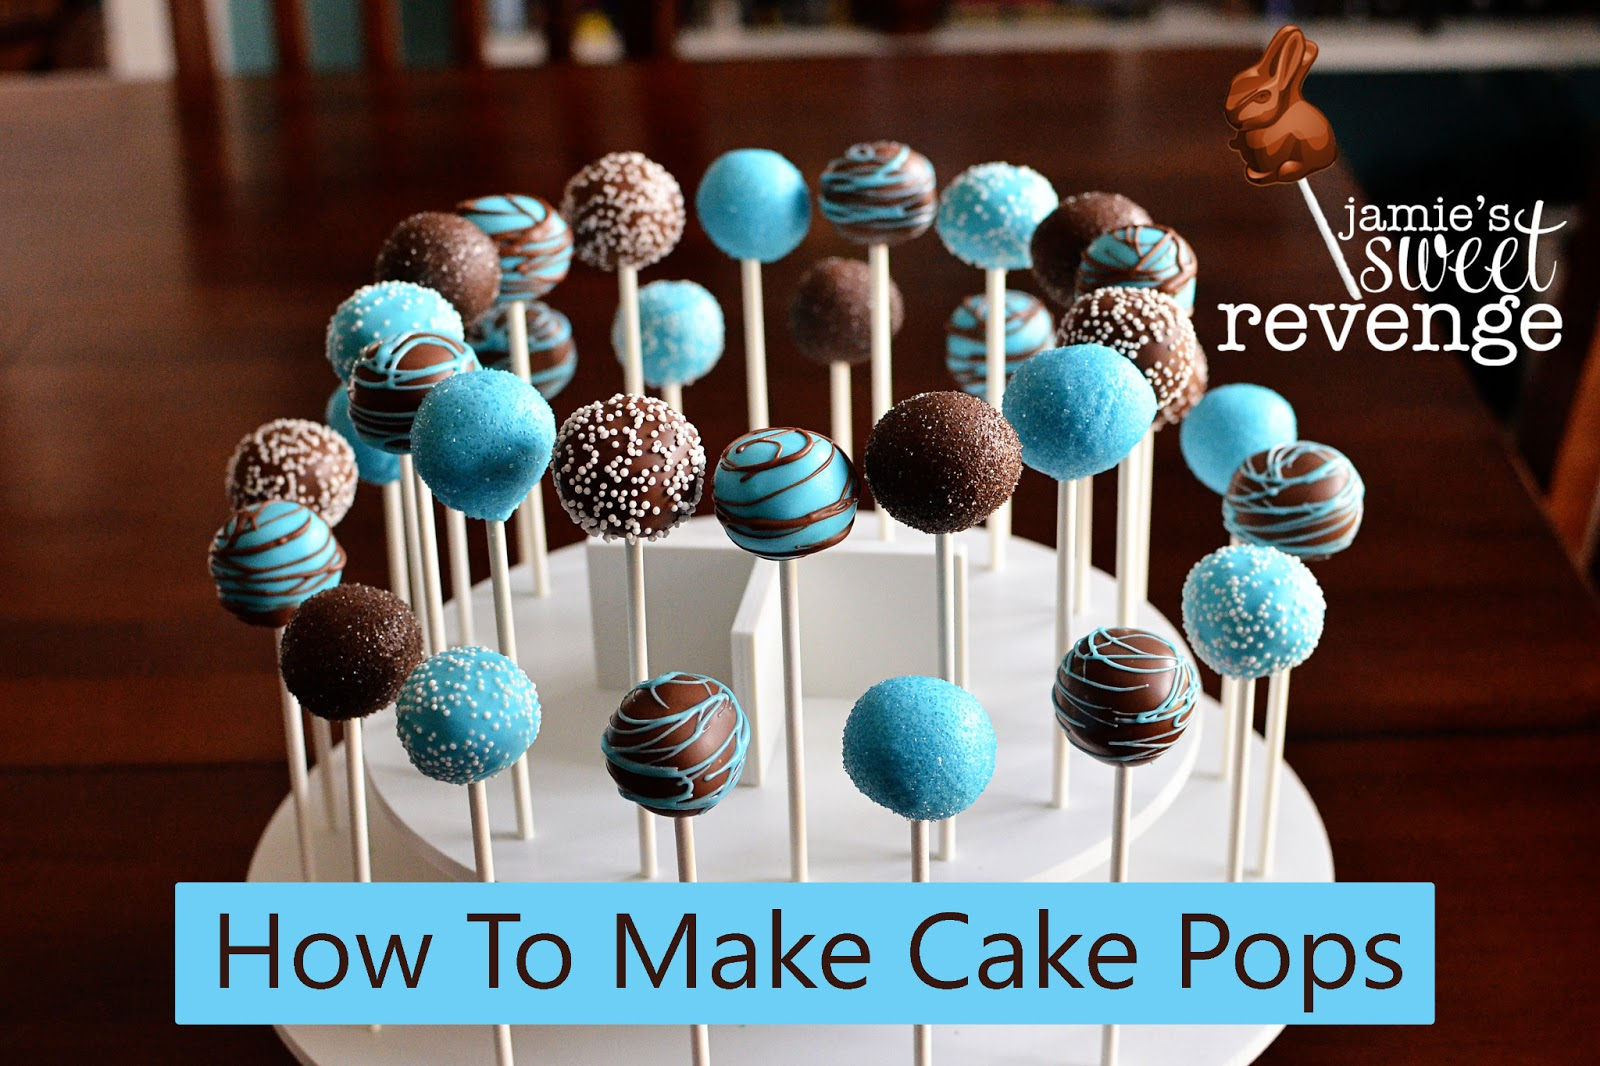 jamie 39 s rabbits the post about how to make cake pops. Black Bedroom Furniture Sets. Home Design Ideas